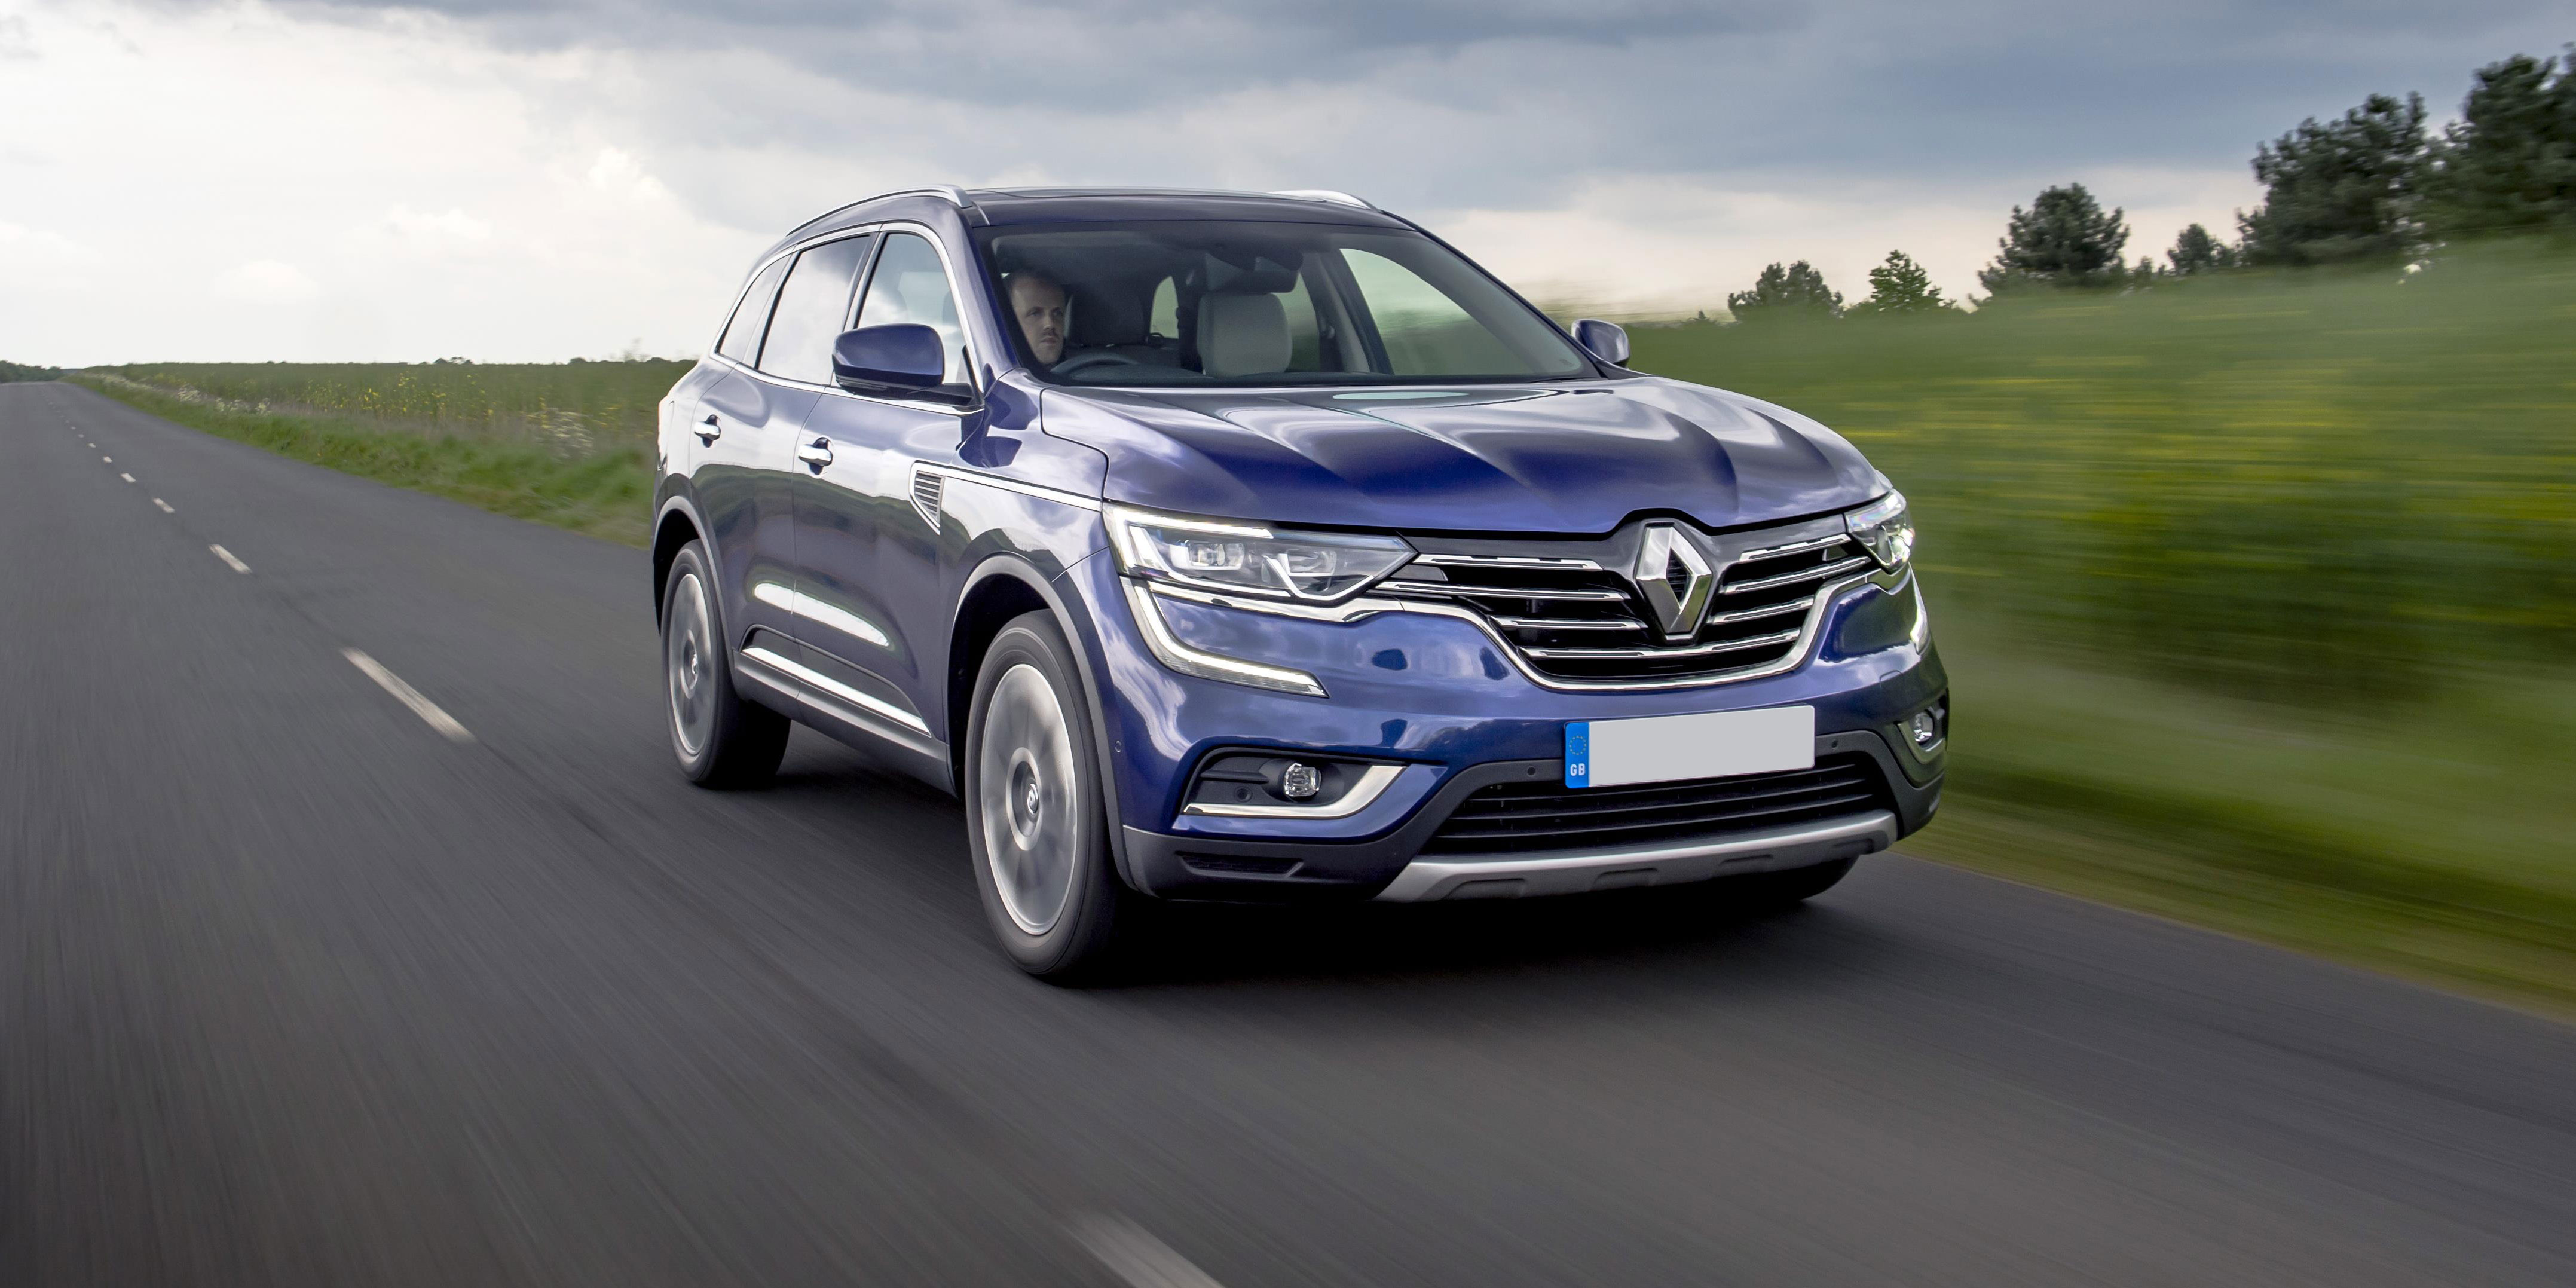 New Renault Koleos Review Carwow